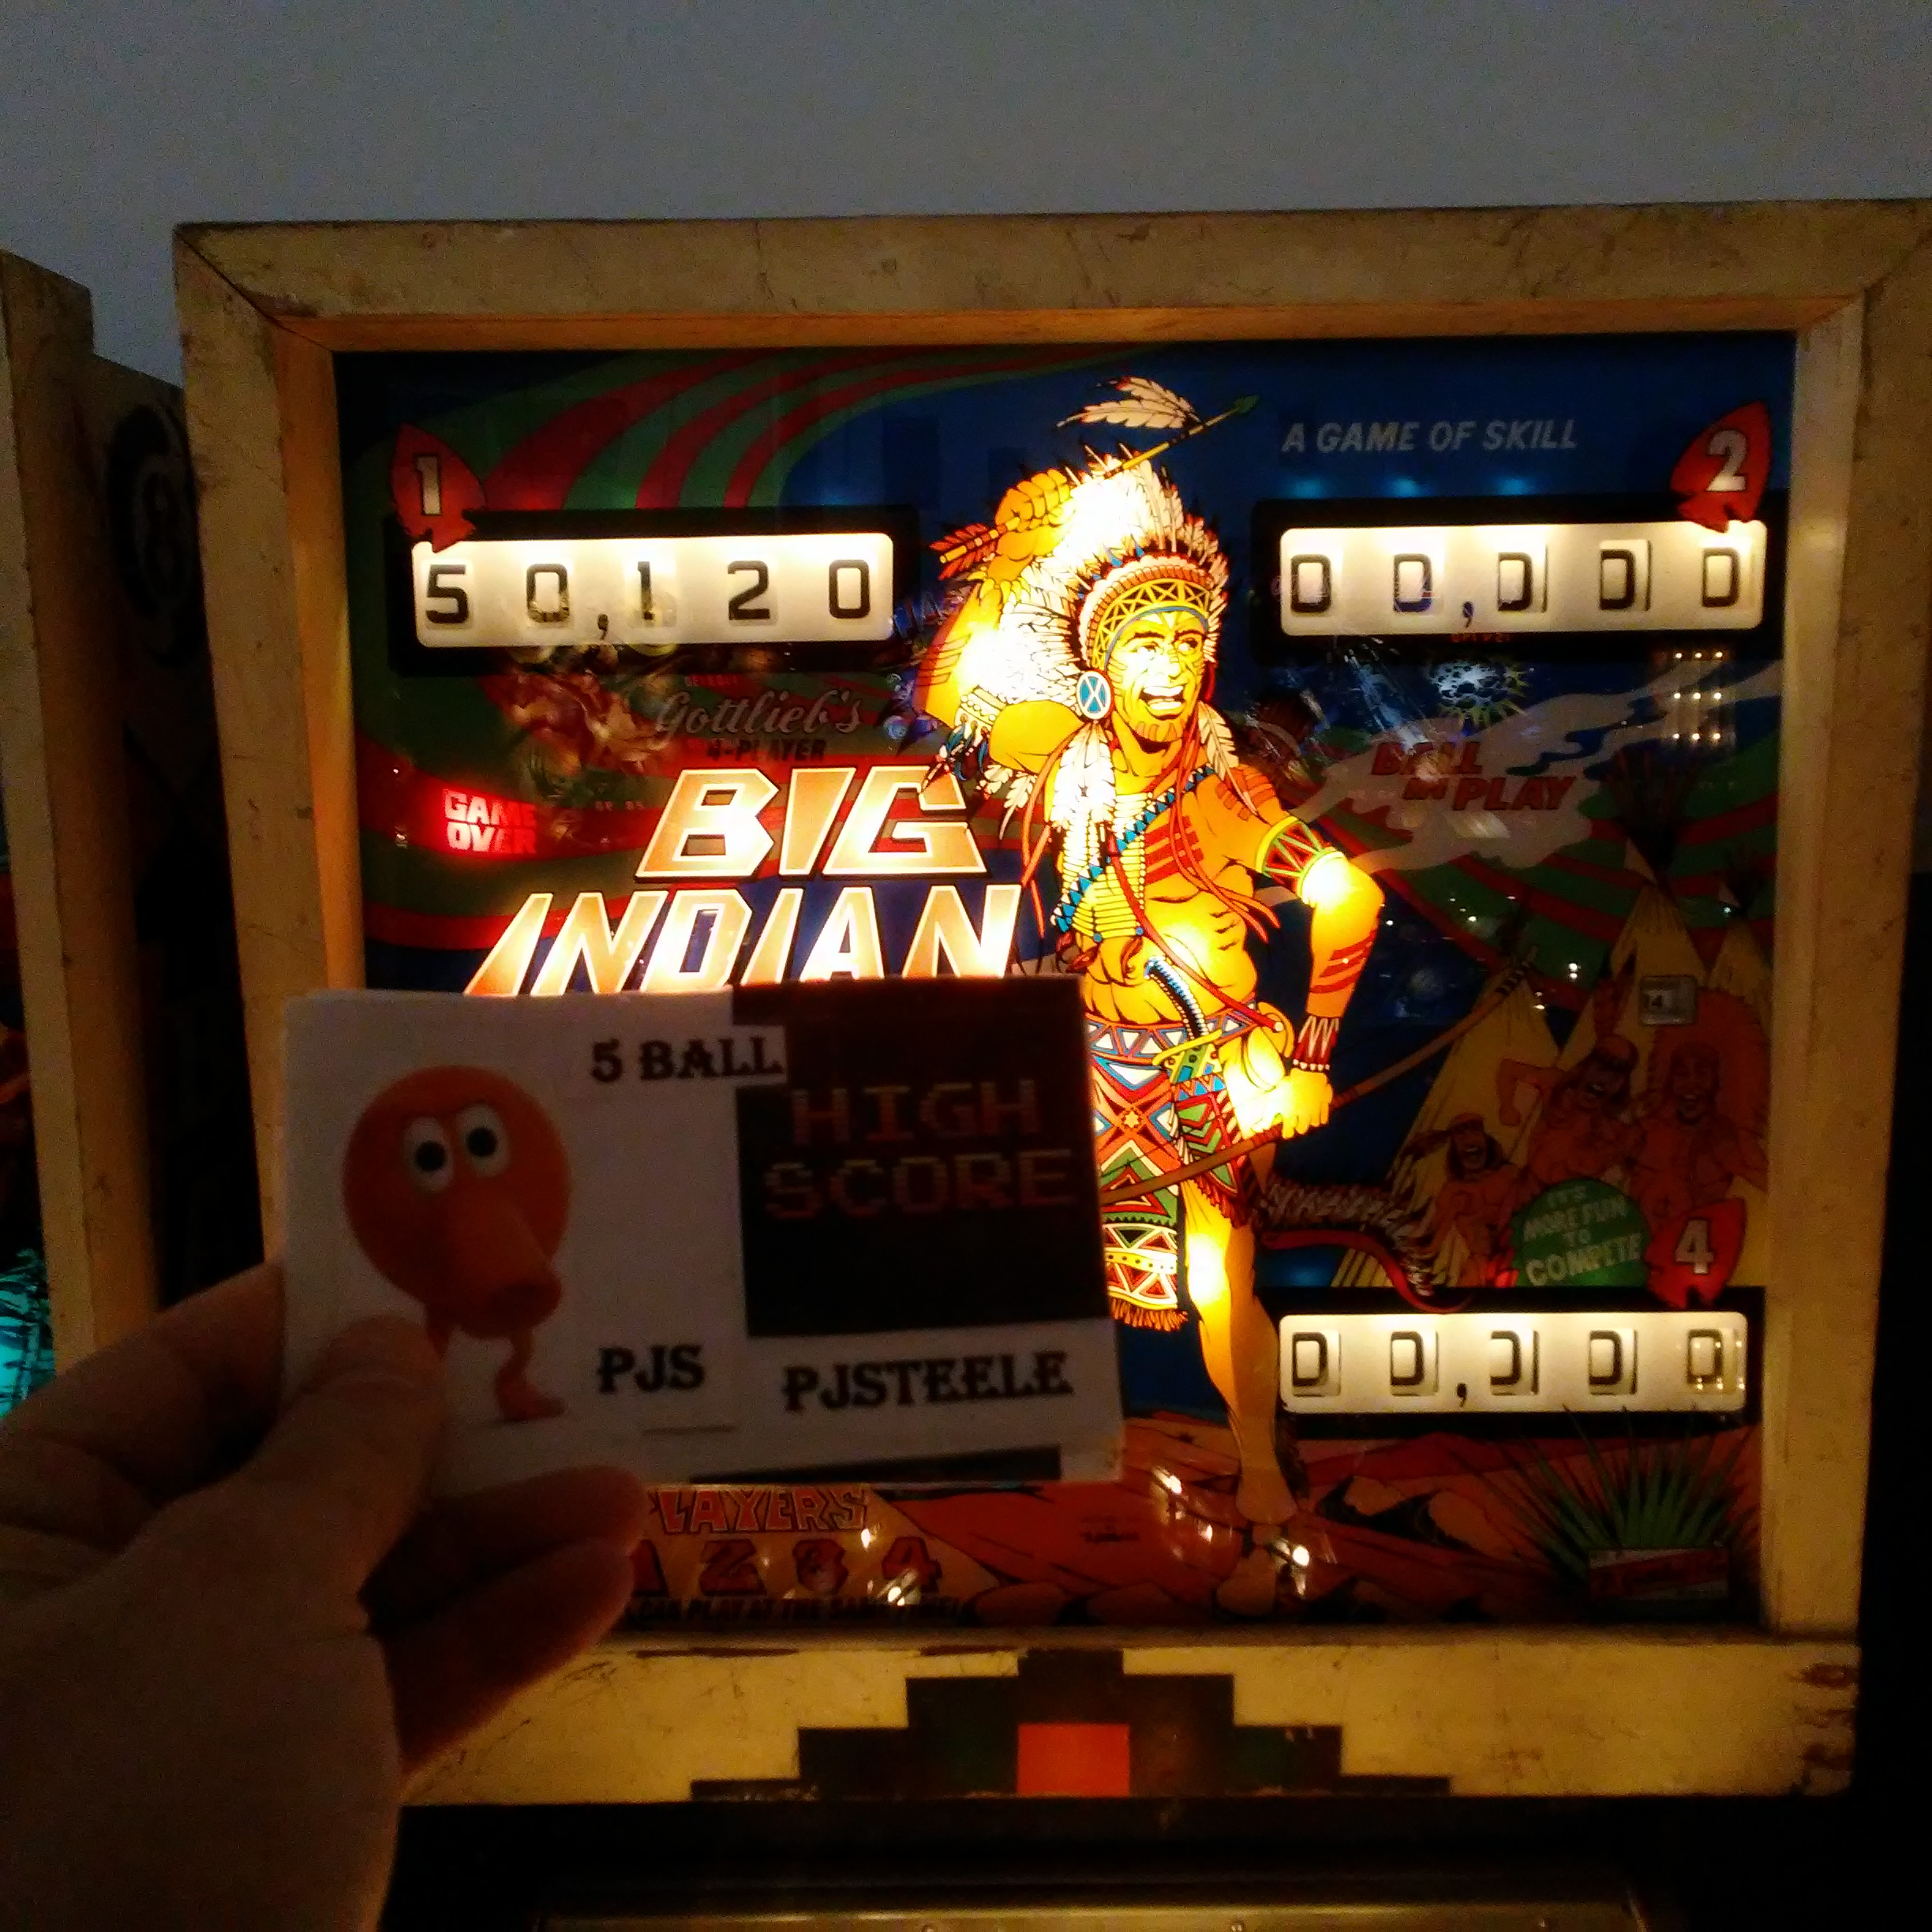 Pjsteele: Big Indian (Pinball: 5 Balls) 50,120 points on 2018-03-04 07:56:23